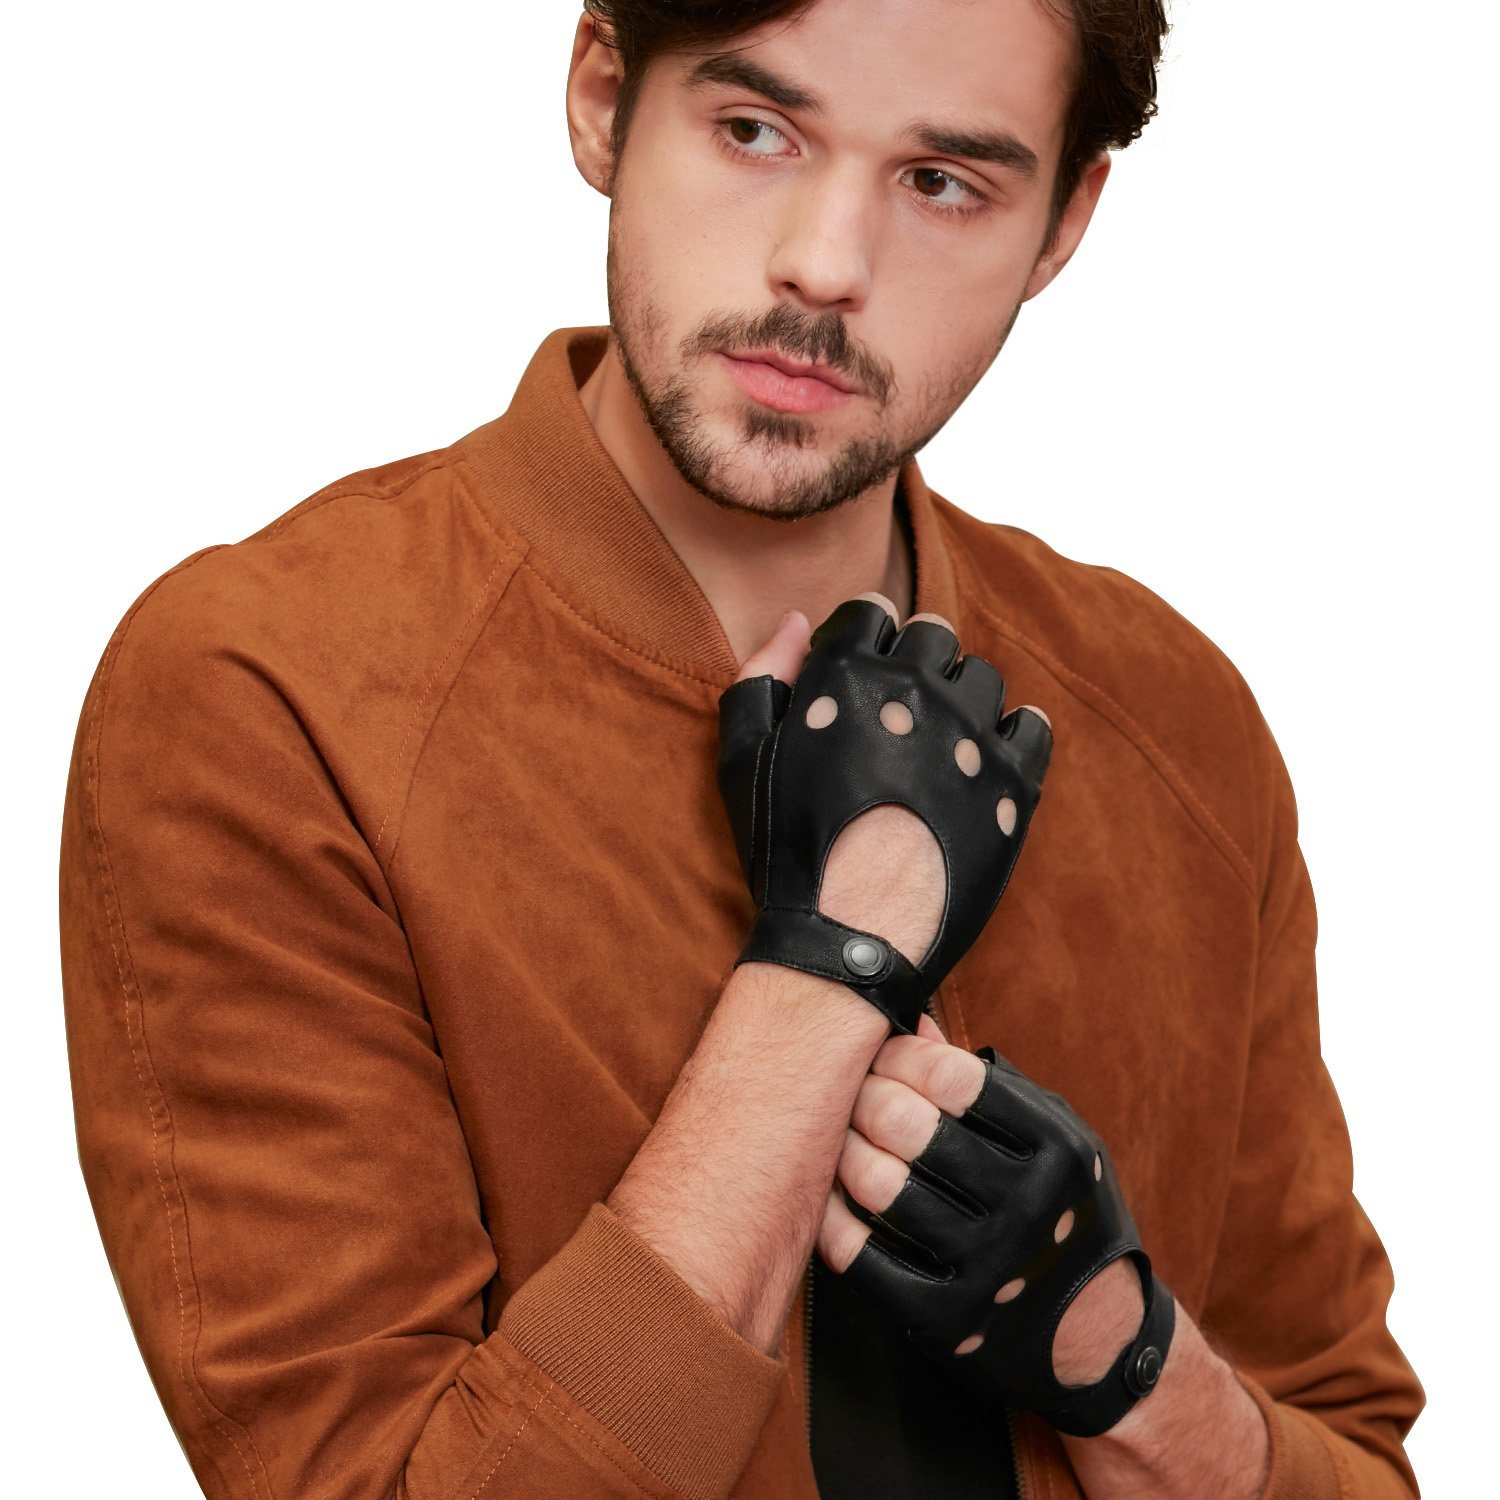 GSG Mens Fingerless Leather Gloves Driving Cycling Gloves Half Finger Fitness Motorcycle Protection Gloves Black Leather Gloves Men Unlined Backless 10.5 Black